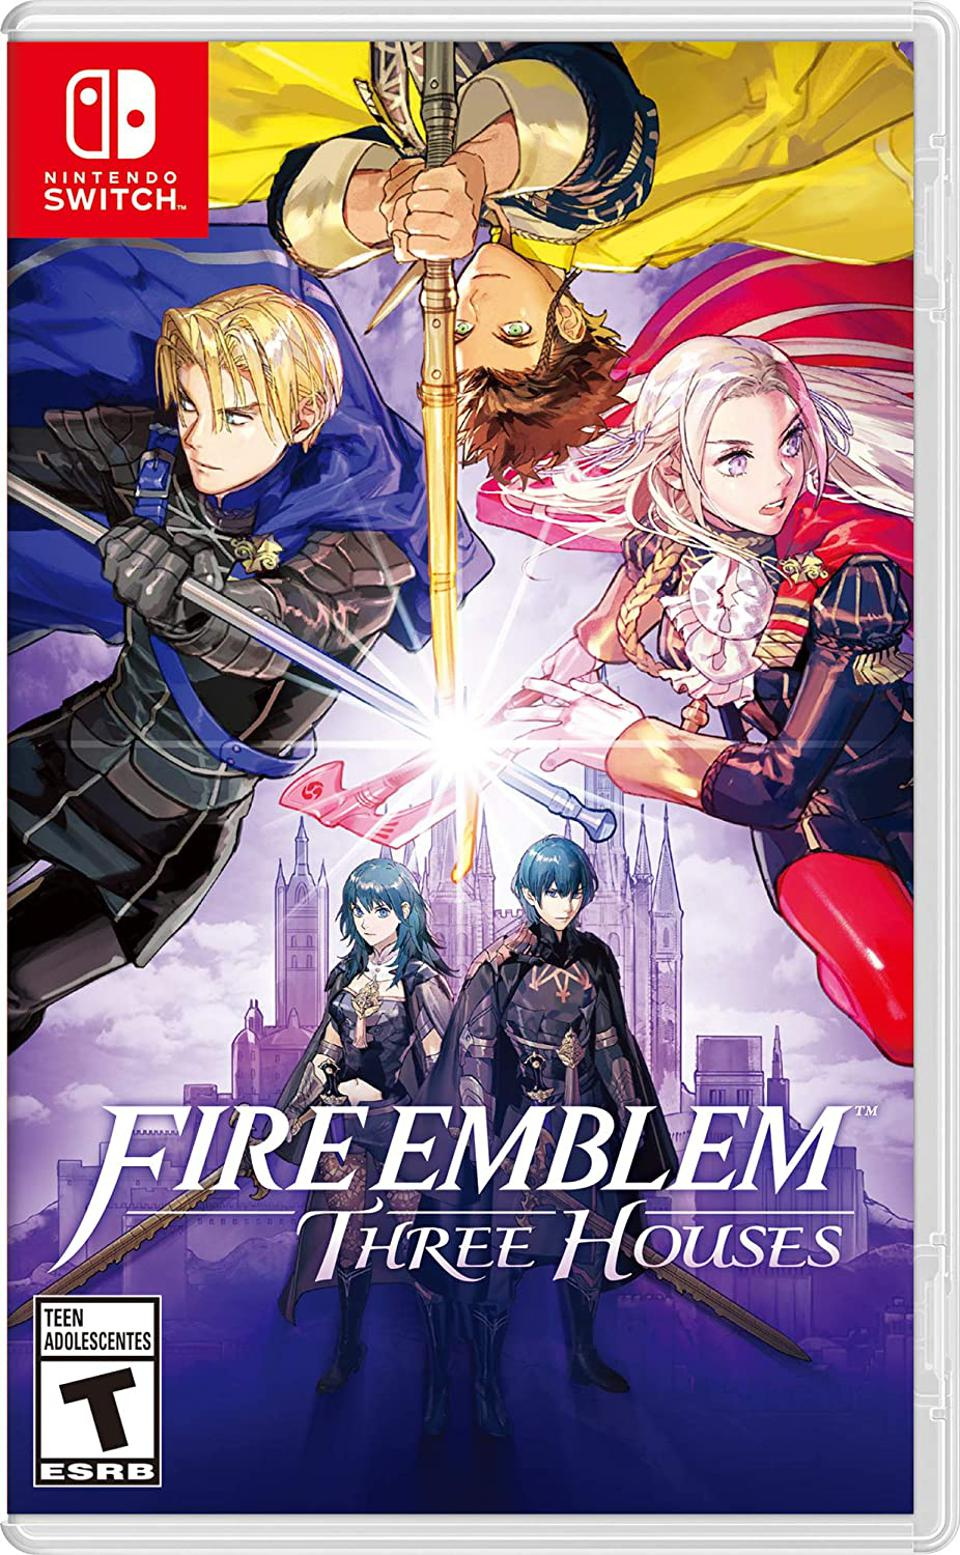 Fire Emblem: Three Houses for Nintendo Switch Retail Packaging